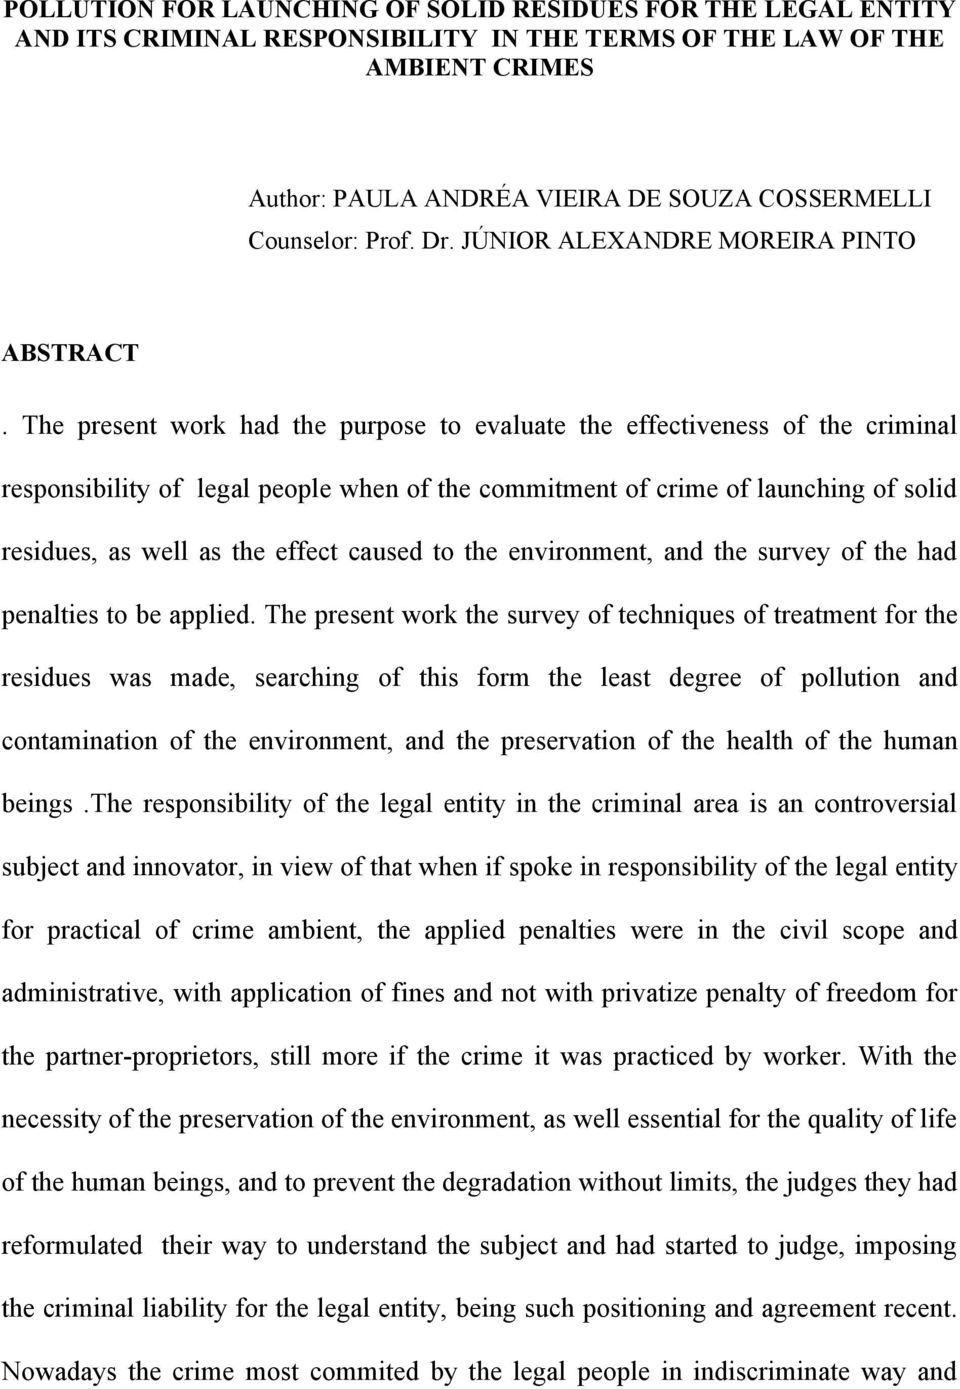 The present work had the purpose to evaluate the effectiveness of the criminal responsibility of legal people when of the commitment of crime of launching of solid residues, as well as the effect